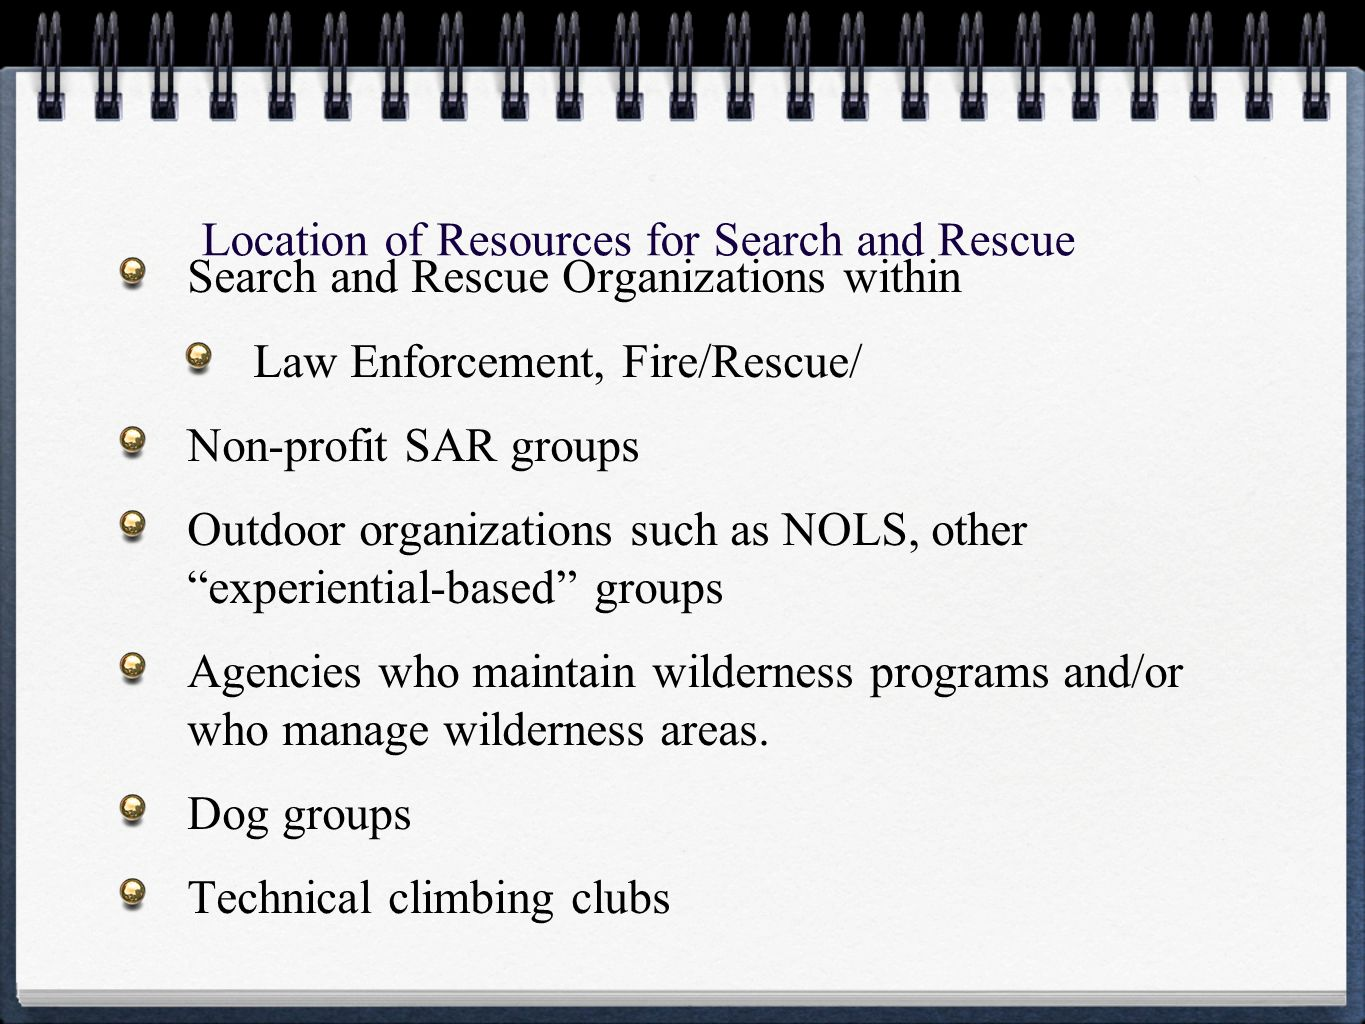 Location of Resources for Search and Rescue Search and Rescue Organizations within Law Enforcement, Fire/Rescue/ Non-profit SAR groups Outdoor organizations such as NOLS, other experiential-based groups Agencies who maintain wilderness programs and/or who manage wilderness areas.